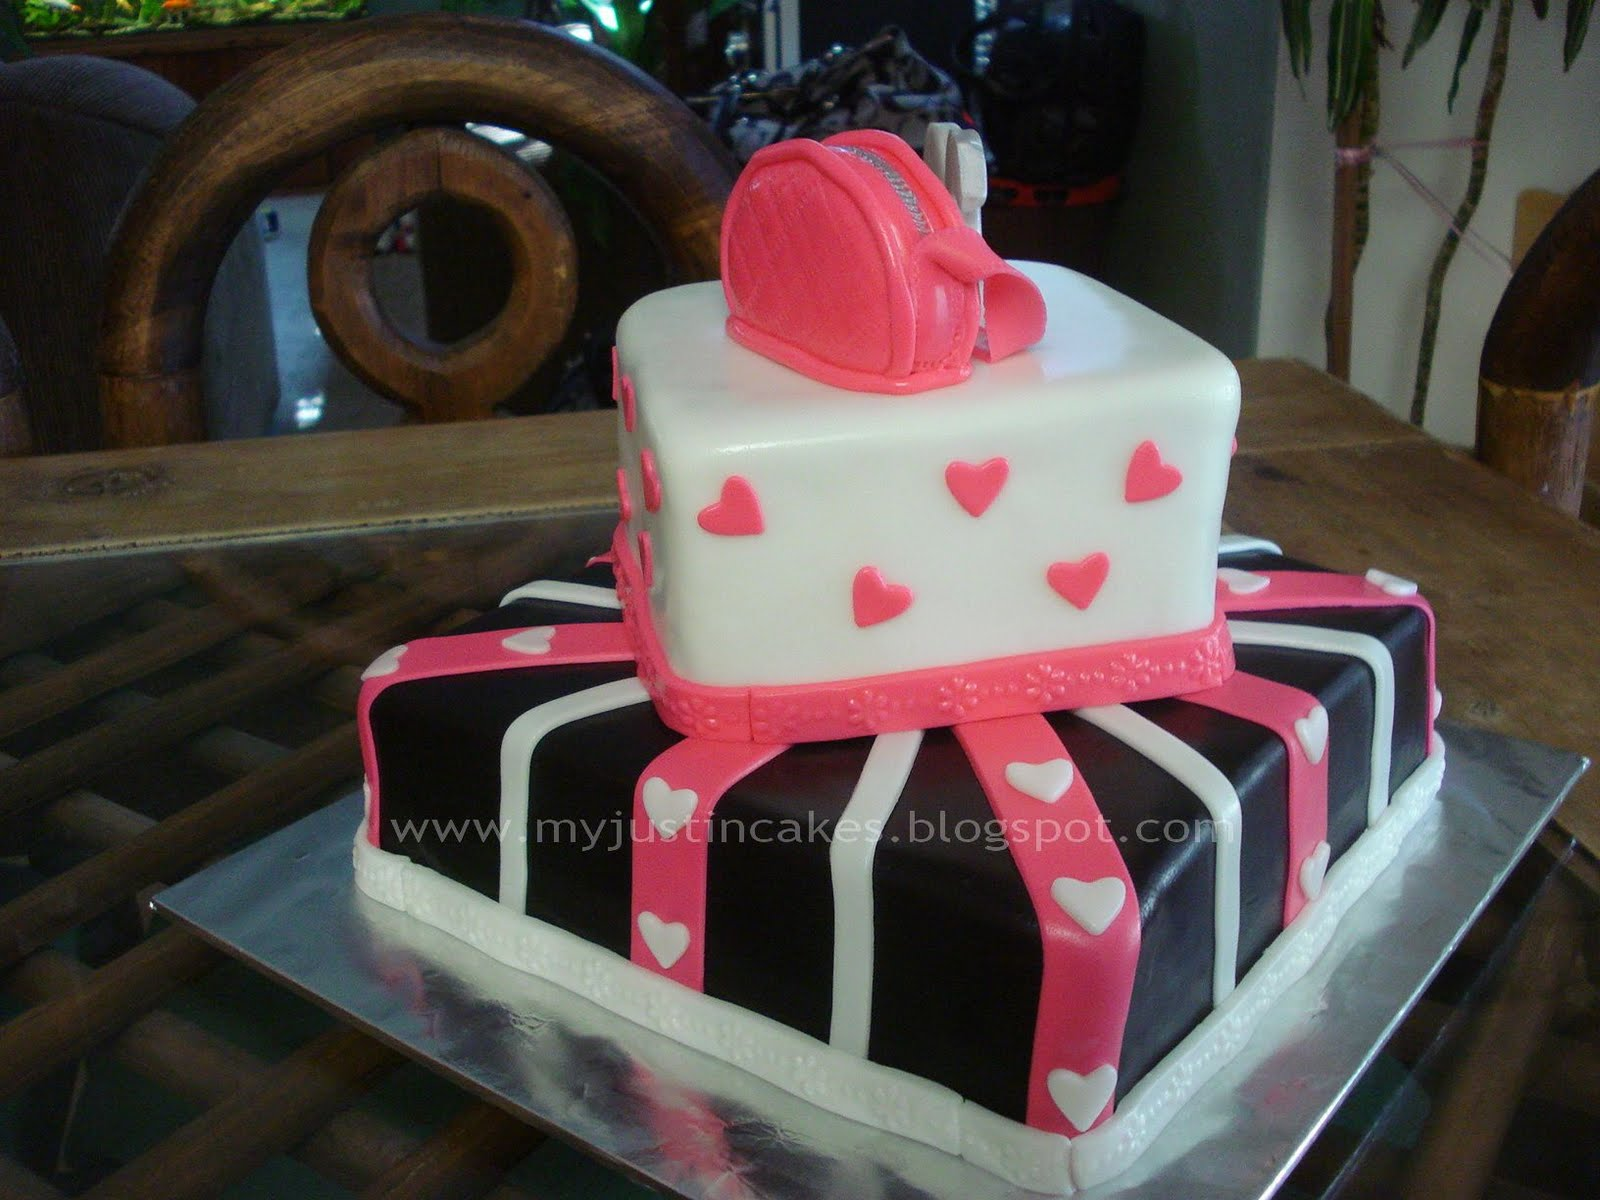 12 Yrs Old Birthday Girl Cake Just In Cakes